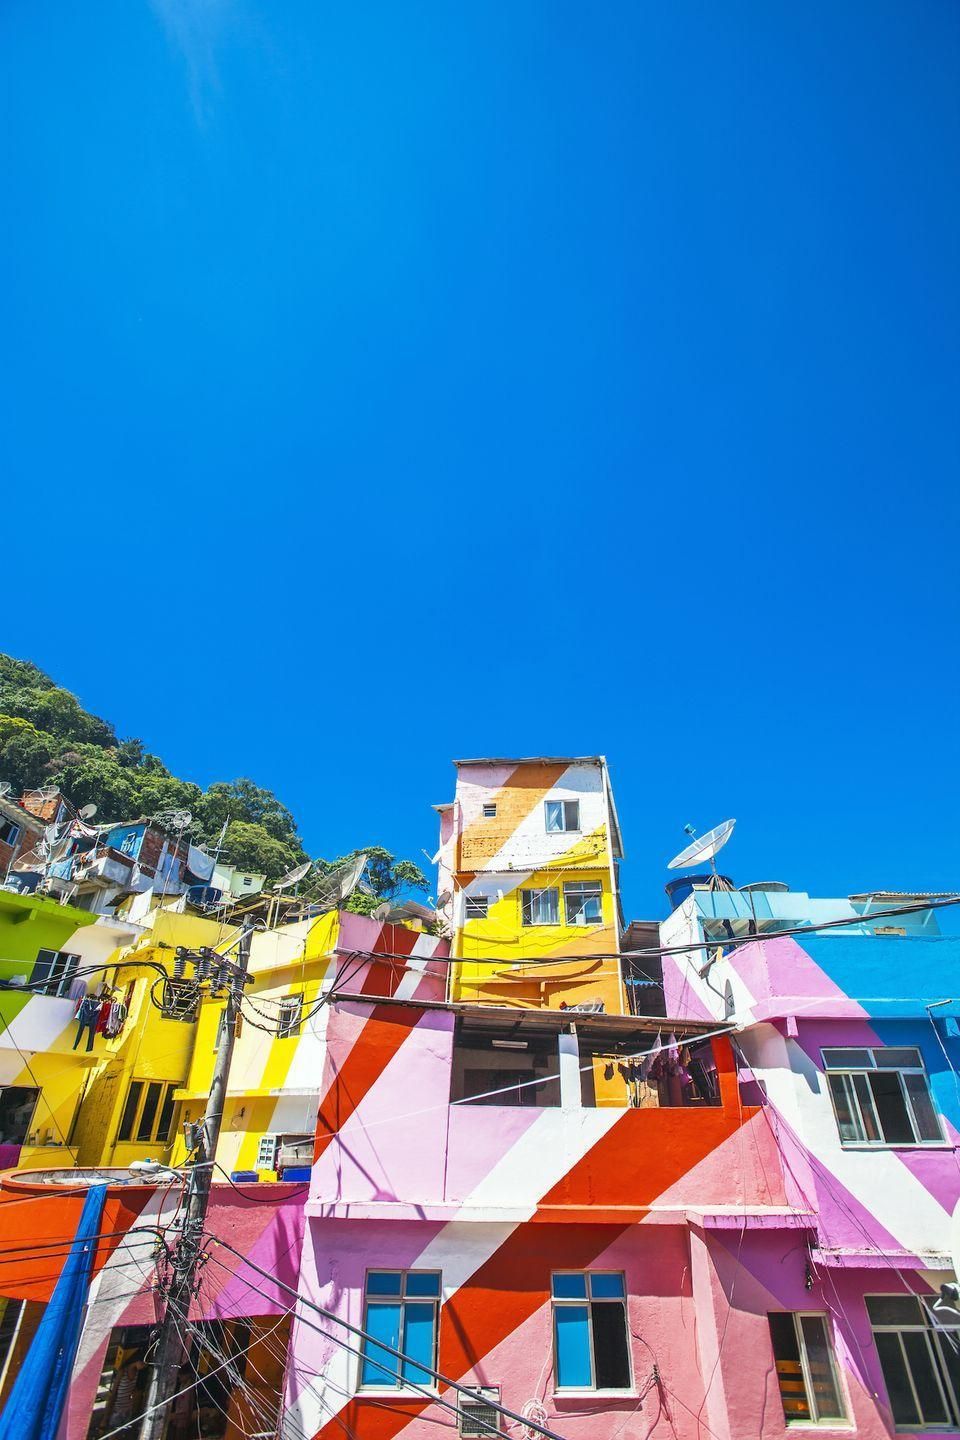 <p>Diagonal stripes and sunny shades make this Rio de Janeiro neighborhood feel alive.</p>